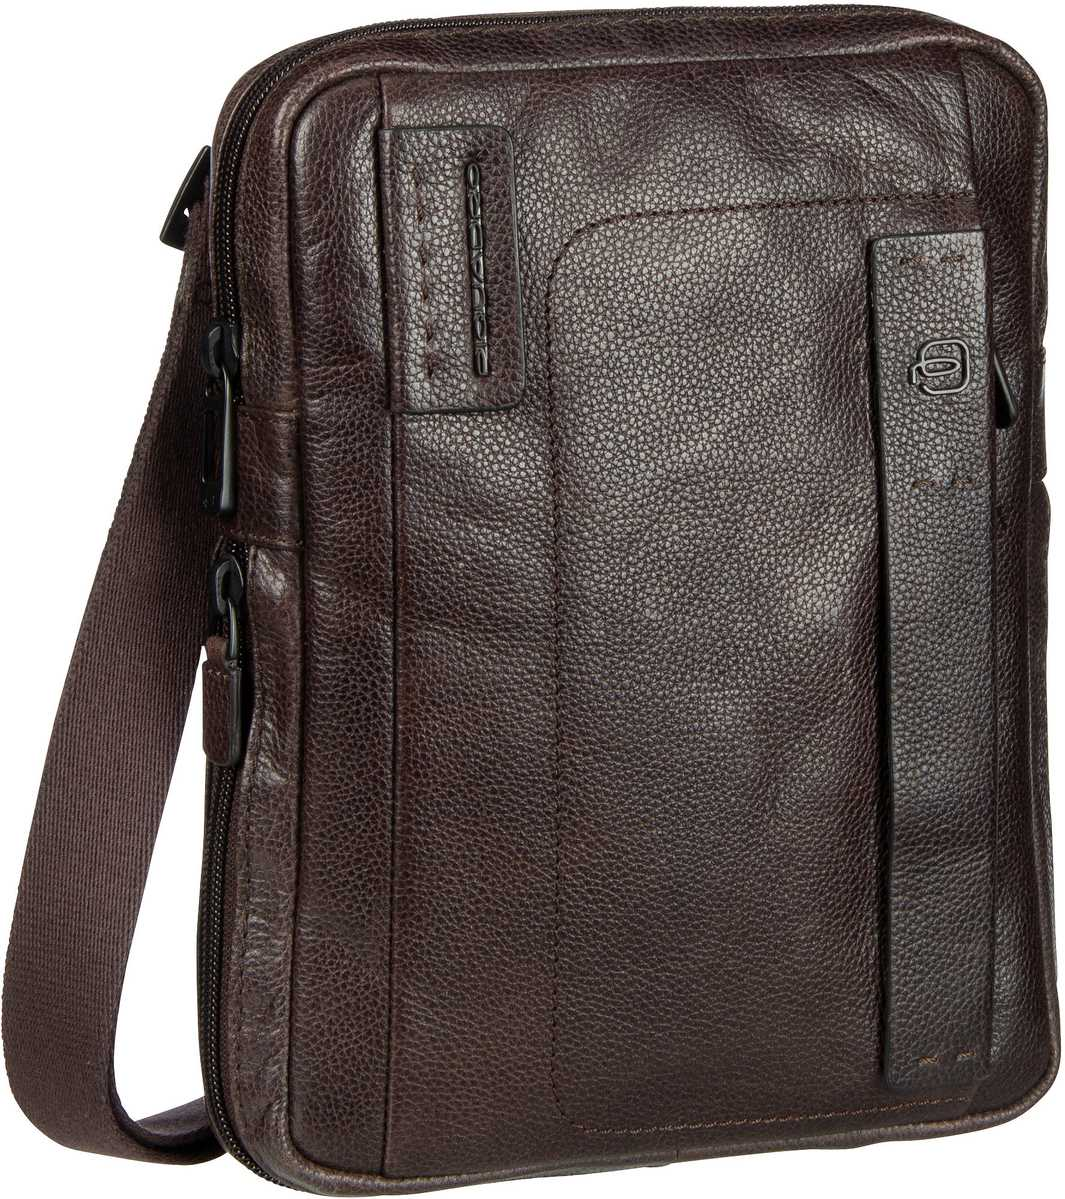 Piquadro Notebooktasche / Tablet Pulse Plus 3228 Testa di moro